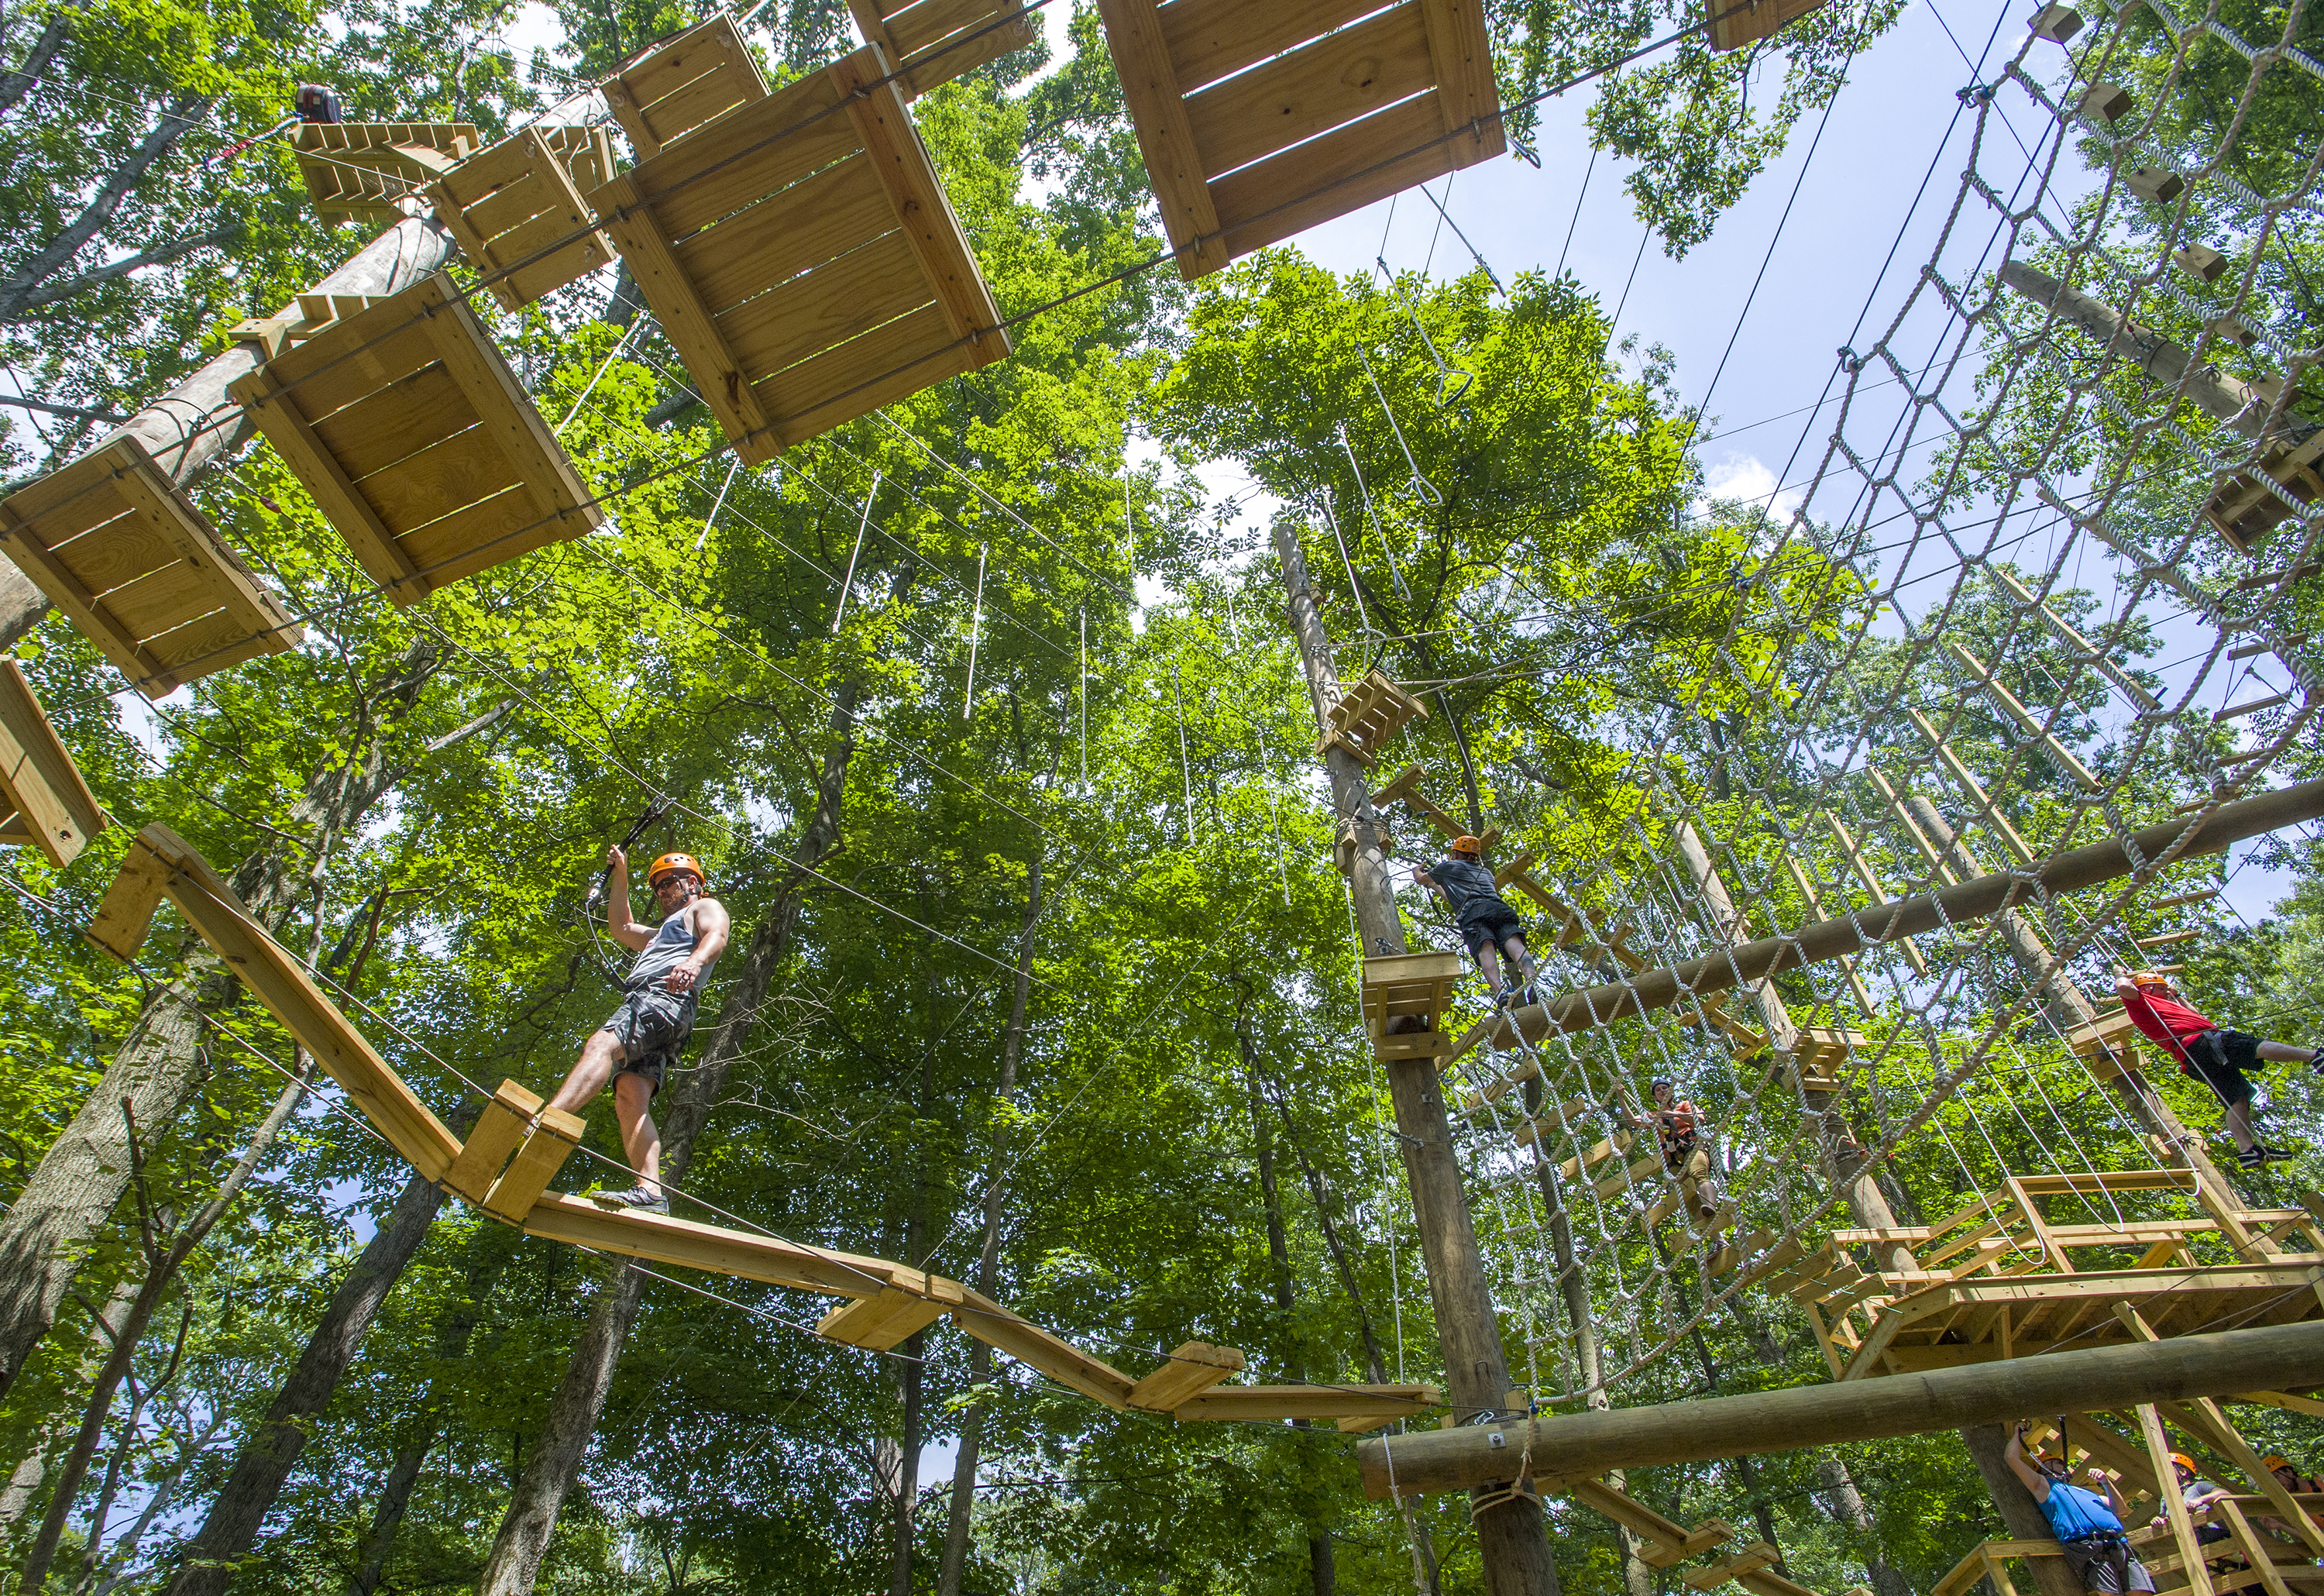 Veteran Chad Stuehlmeyer, left, of Mt. Vernon, Ill., one of the participants in Project Sanctuary, navigates the ropes course at the Pearlstone Center in Reisterstown, Md. MUST CREDIT: Photo for The Washington Post by Doug Kapustin